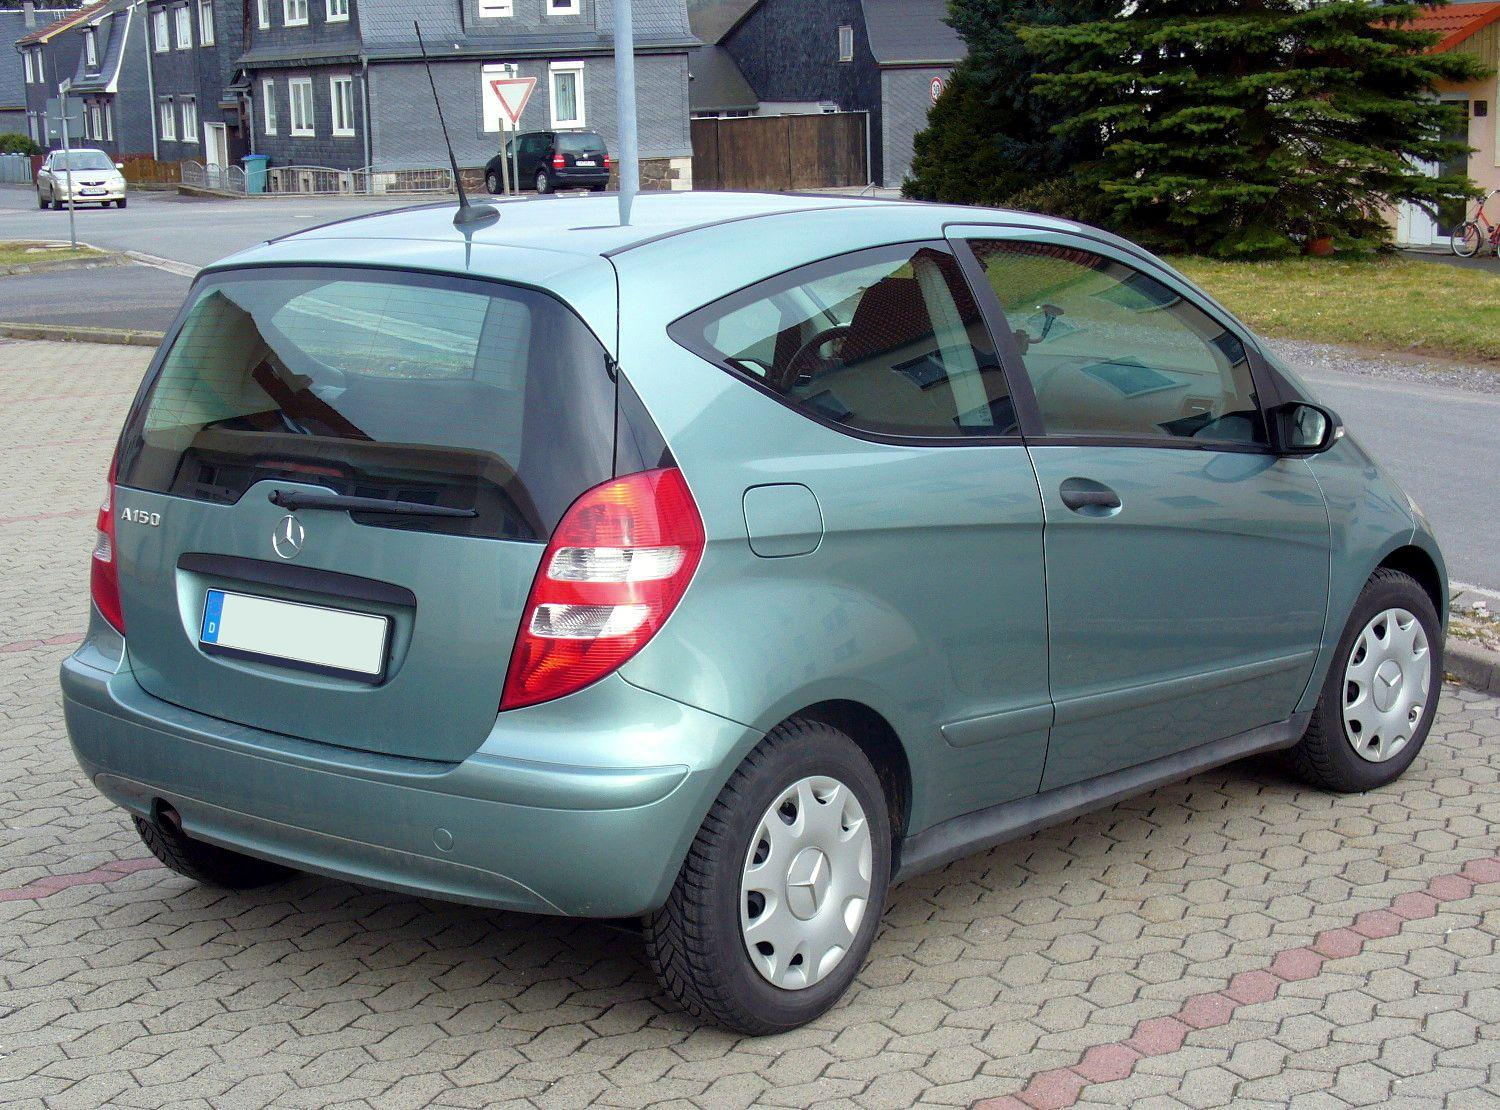 Mercedes-benz a150 photo - 1